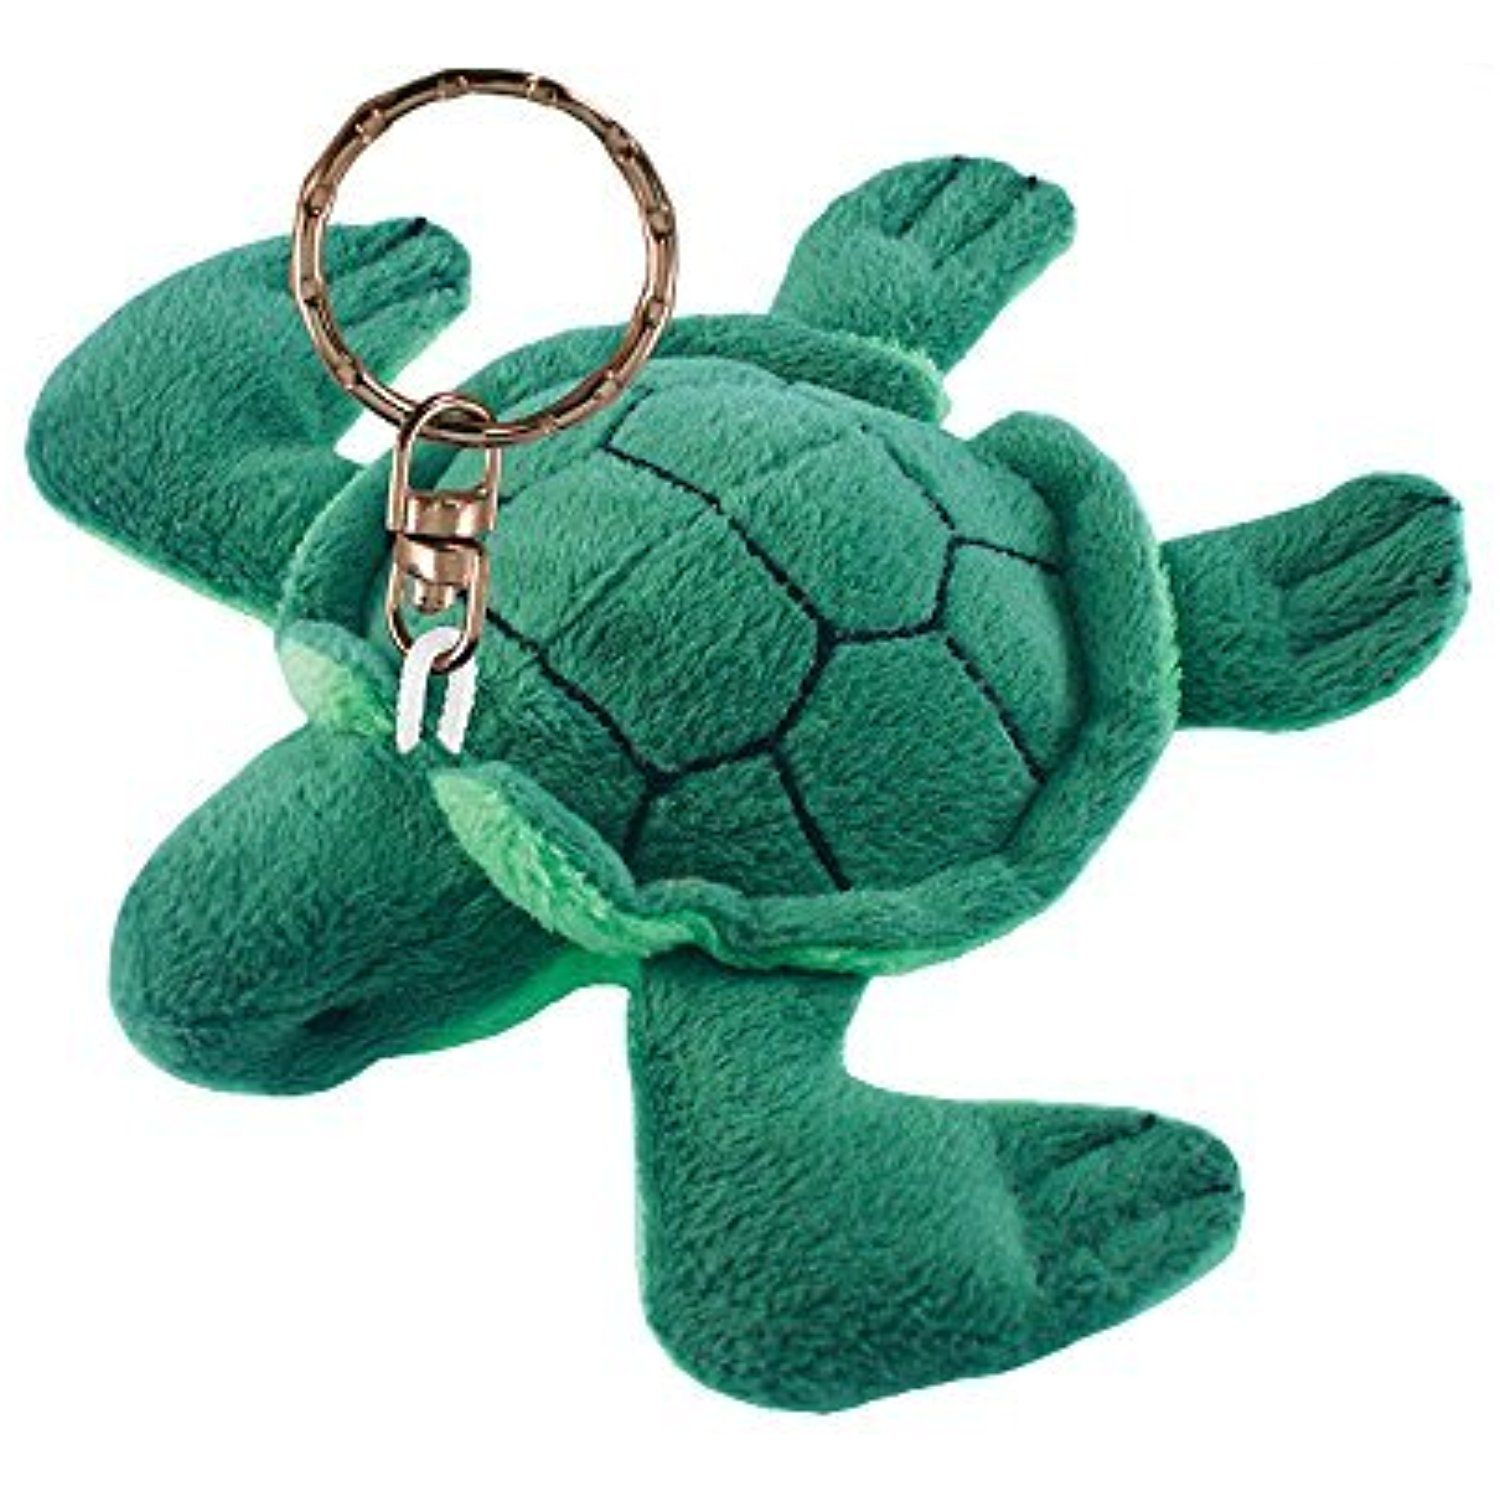 Puzzled sea turtle plush keychain check this awesome